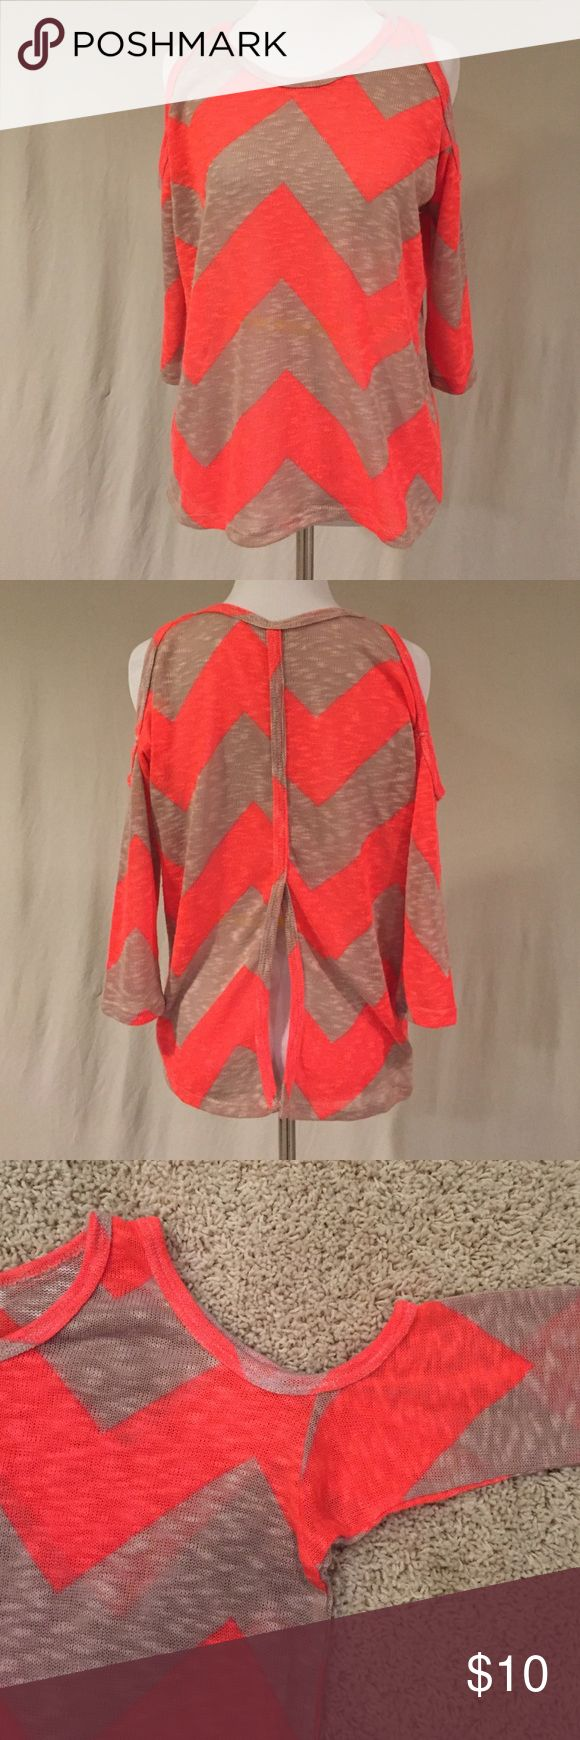 Charming Charlie's Chevron Top Charming Charlie's Chevron Top, size small. Cold shoulders, split back. Worn once. Charming Charlie Sweaters Crew & Scoop Necks